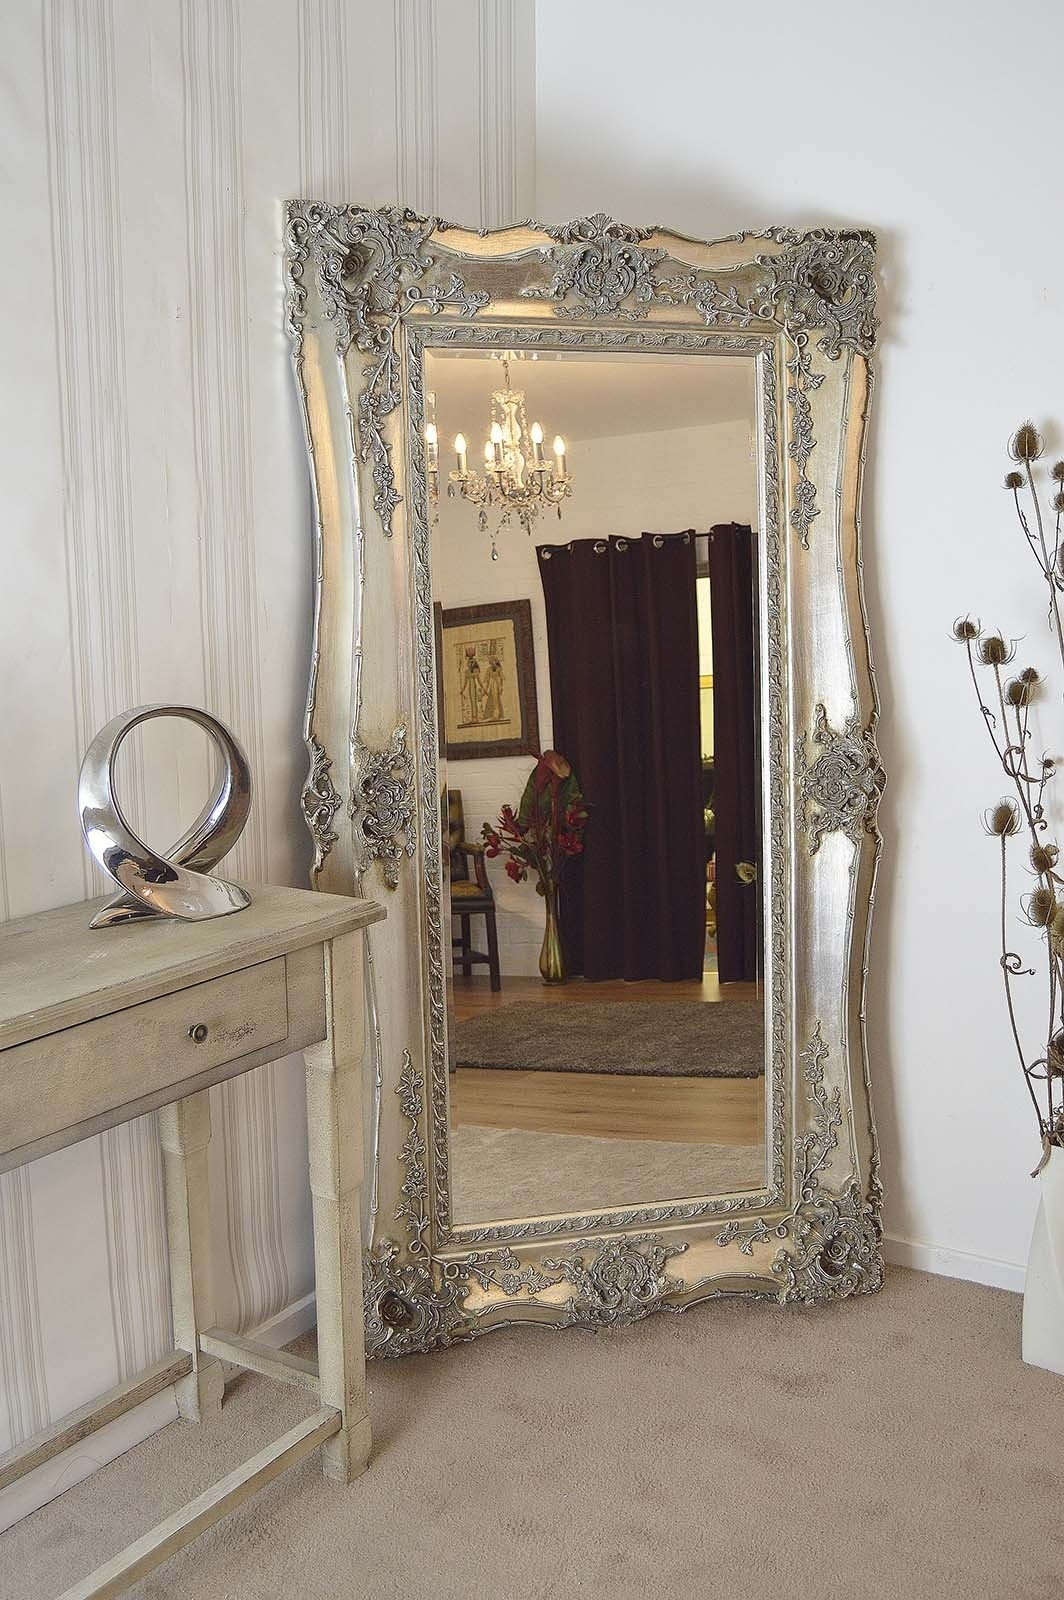 Bedroom Furniture Large Gold Mirror Free Standing Mirror Wooden With Antique Wall Mirrors For Sale (Image 1 of 15)